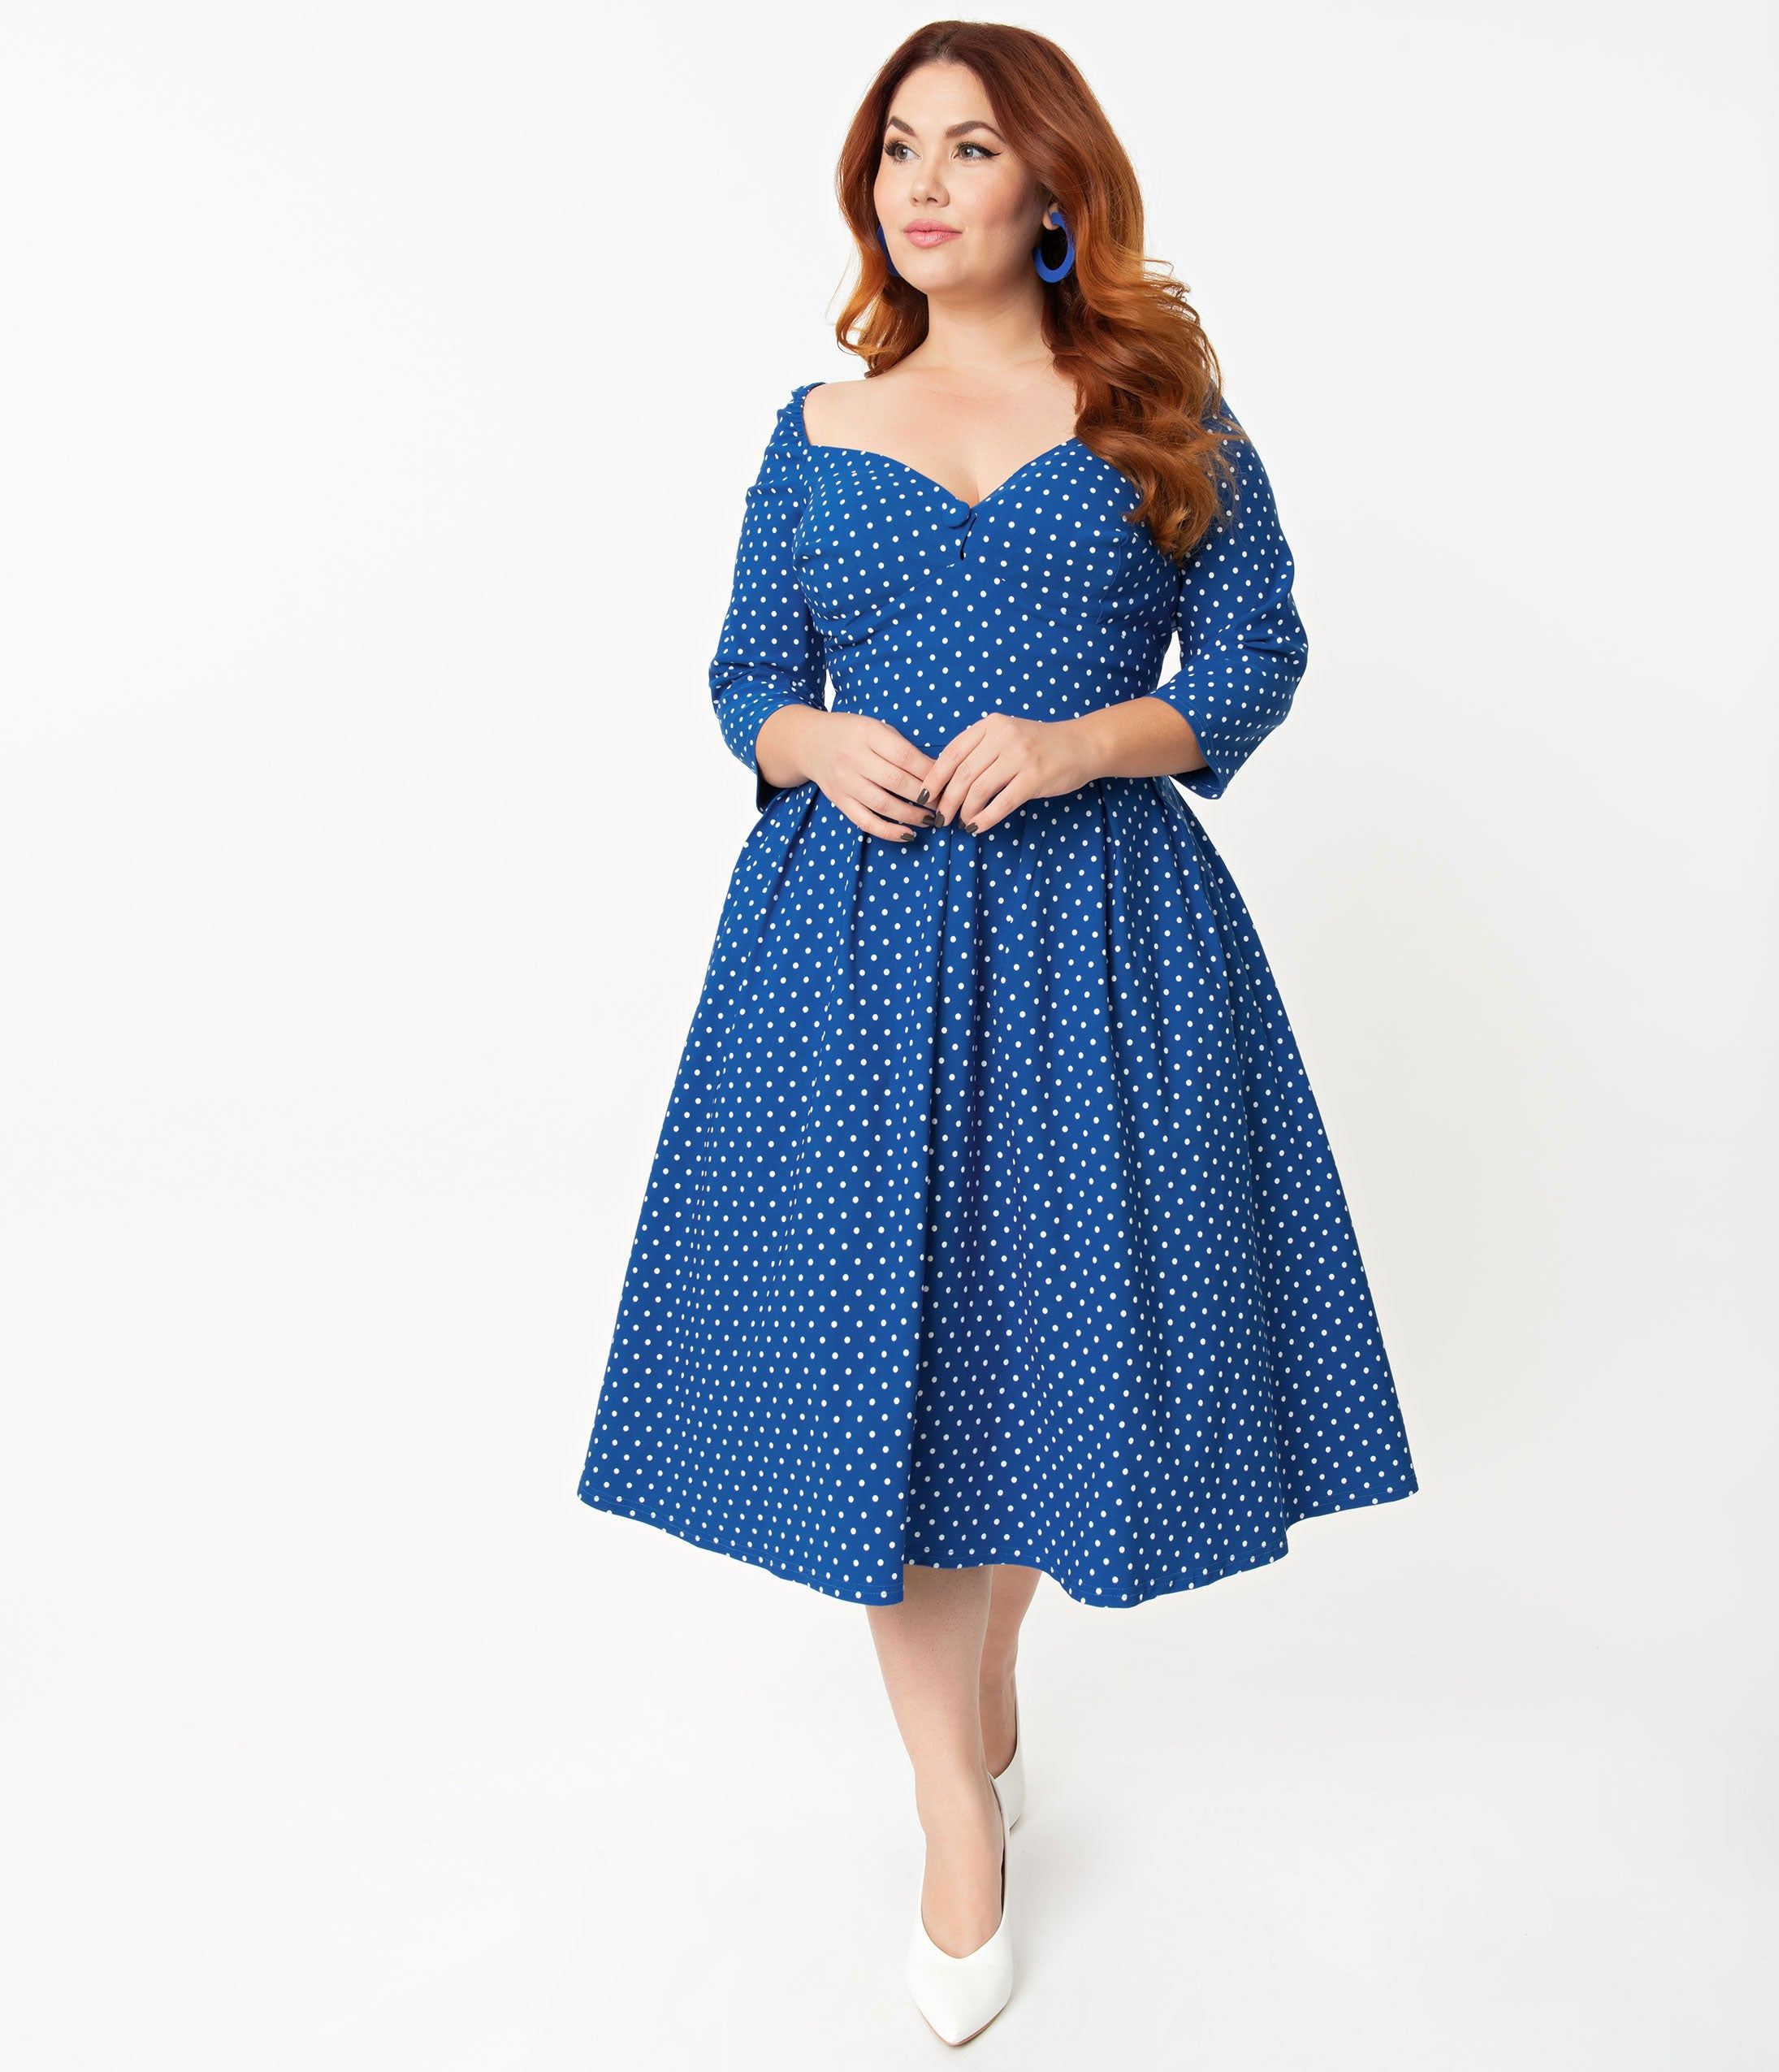 1950s Plus Size Dresses, Swing Dresses Unique Vintage  Pantone Plus Size Classic Blue  White Pin Dot Lamar Swing Dress $110.00 AT vintagedancer.com